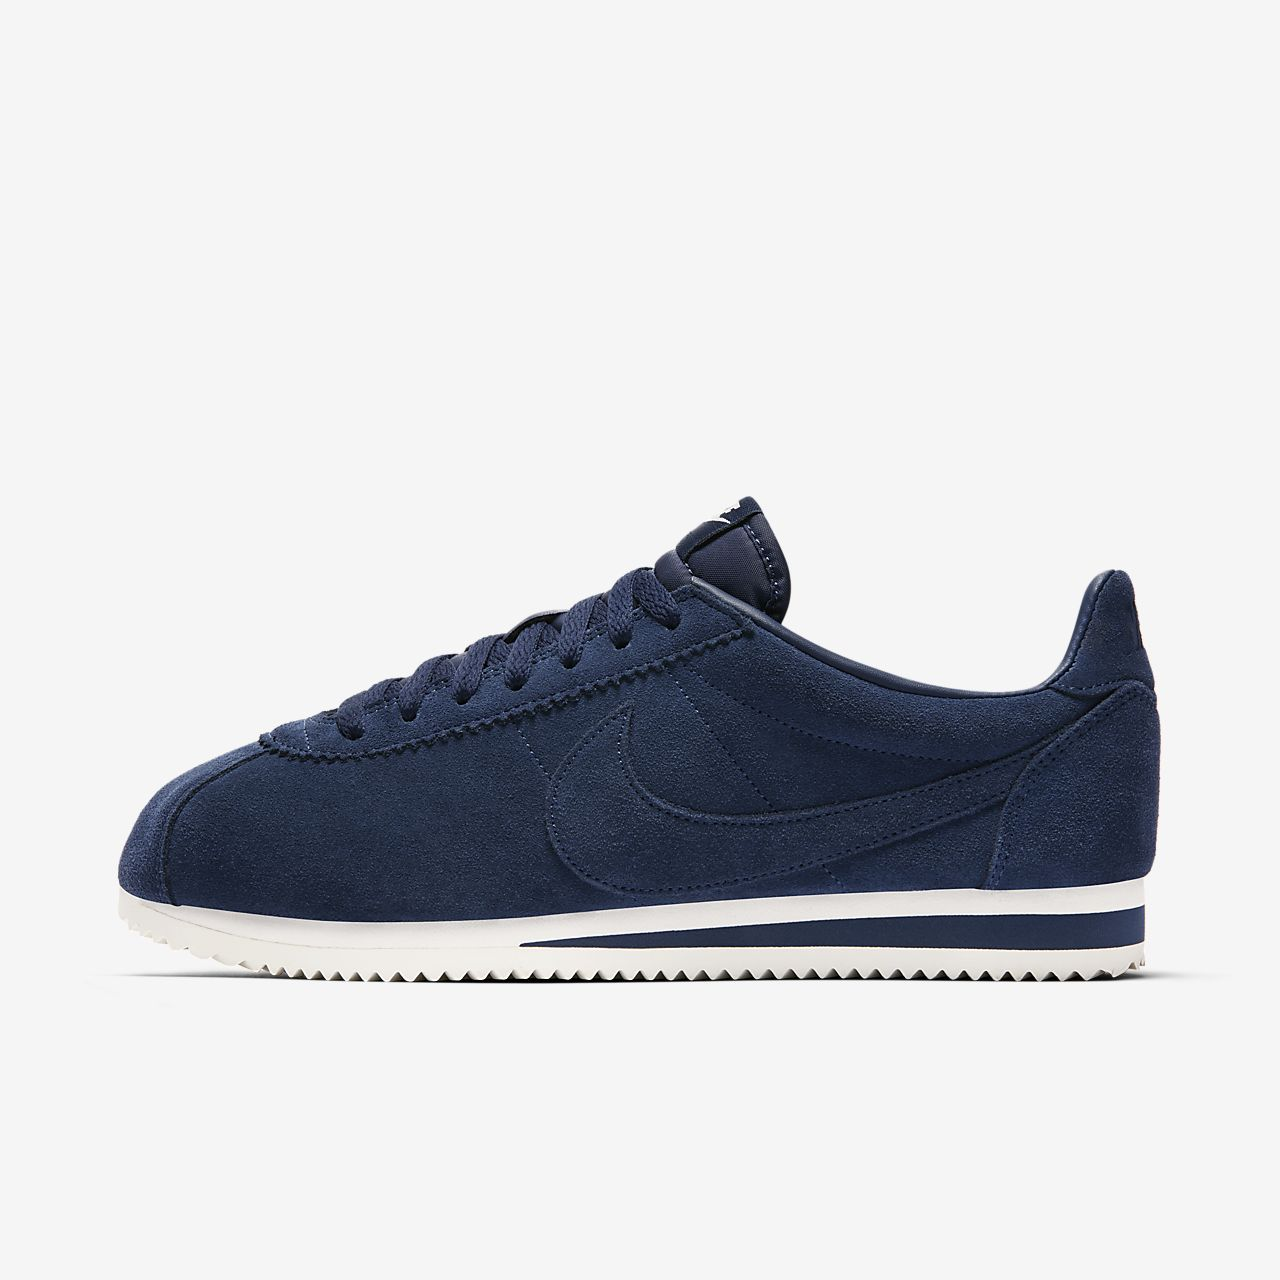 chaussure nike homme classic cortez, ... Chaussure Nike Classic Cortez SE pour Homme